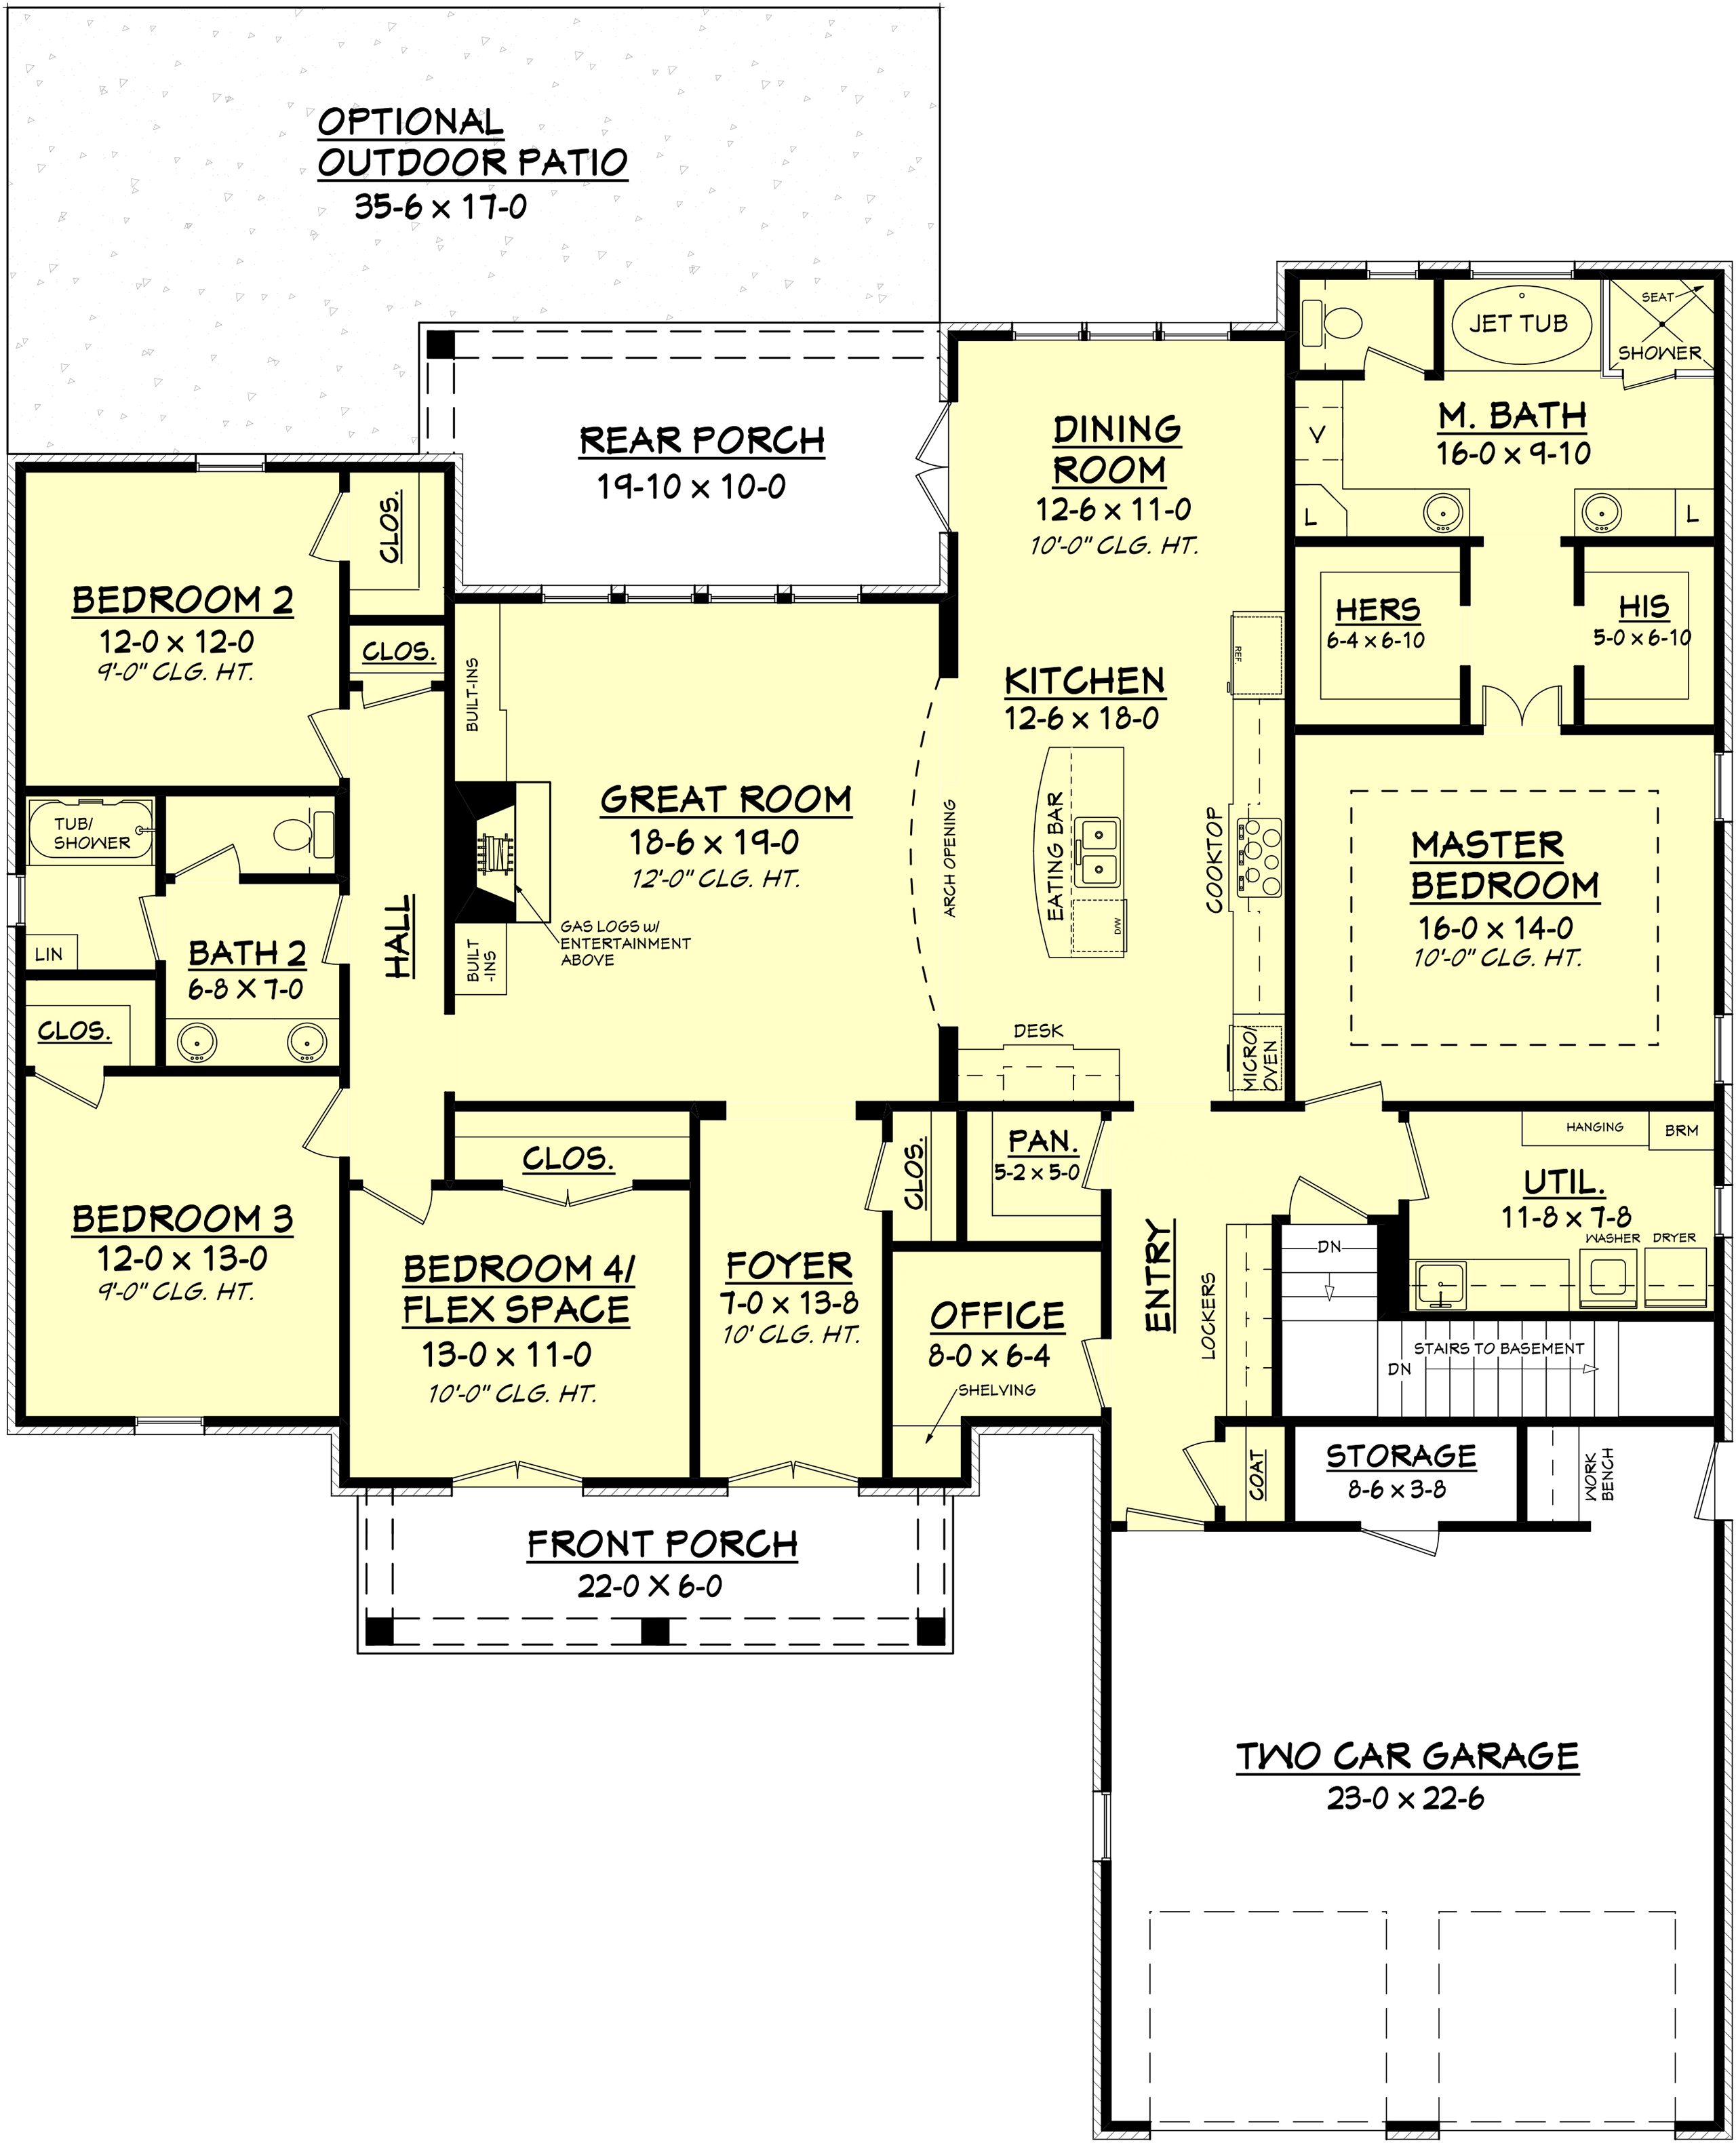 House plan 142 1100 4 bdrm 2 480 sq ft european home 1100 sq ft house plans